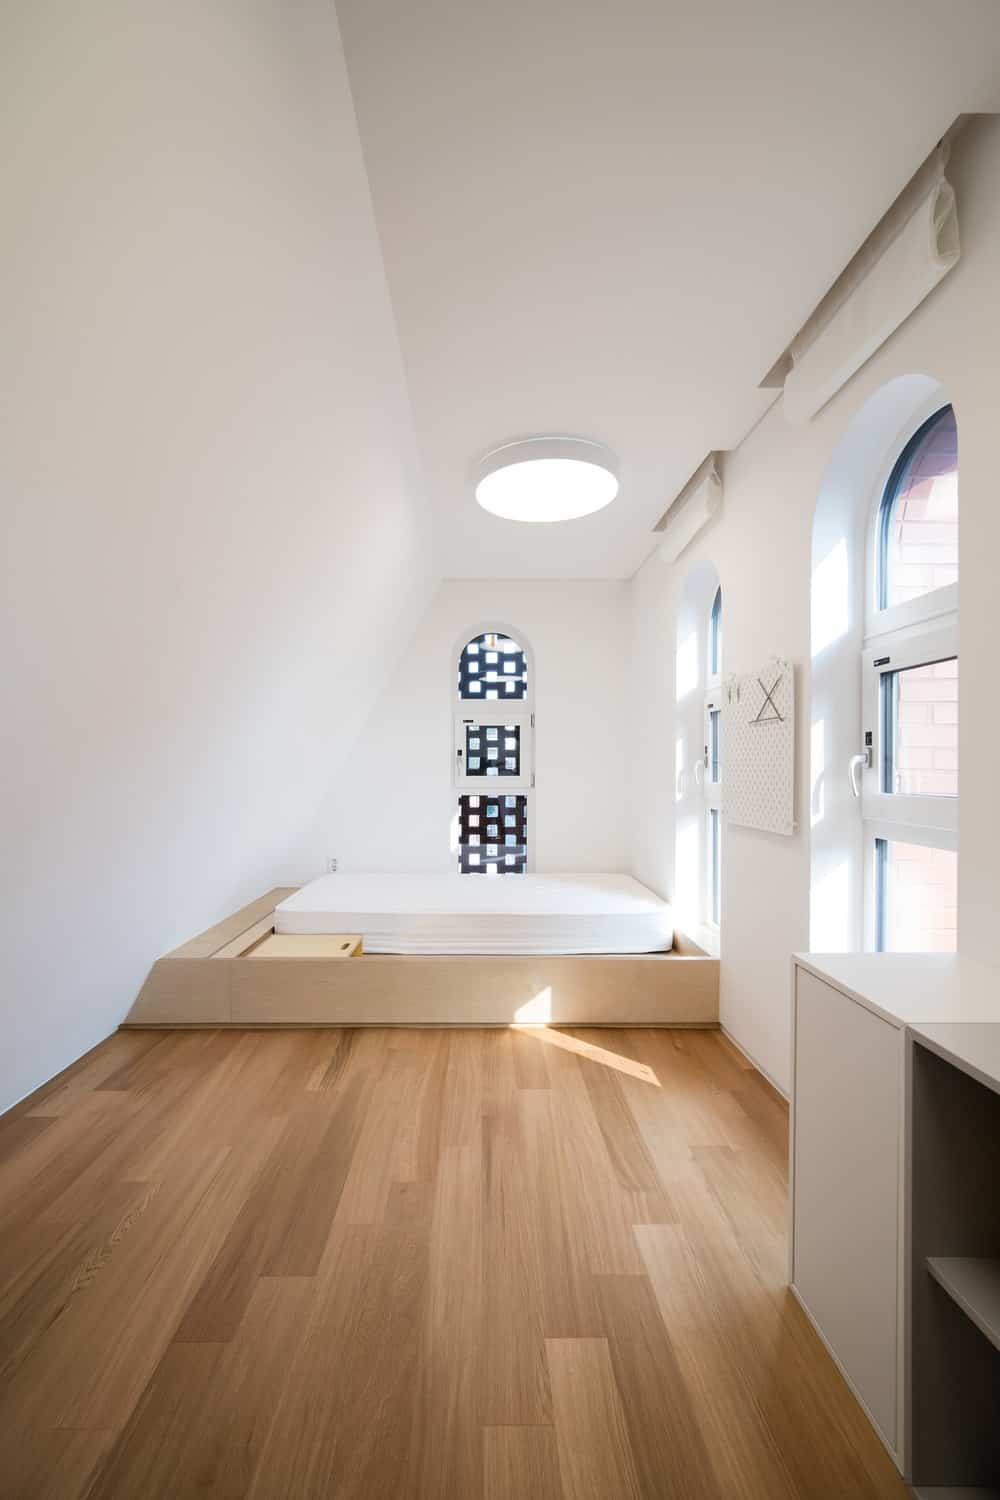 This bedroom has a wooden platform bed on the far side by the windows. This is complemented by the surrounding bright beige walls and ceiling.